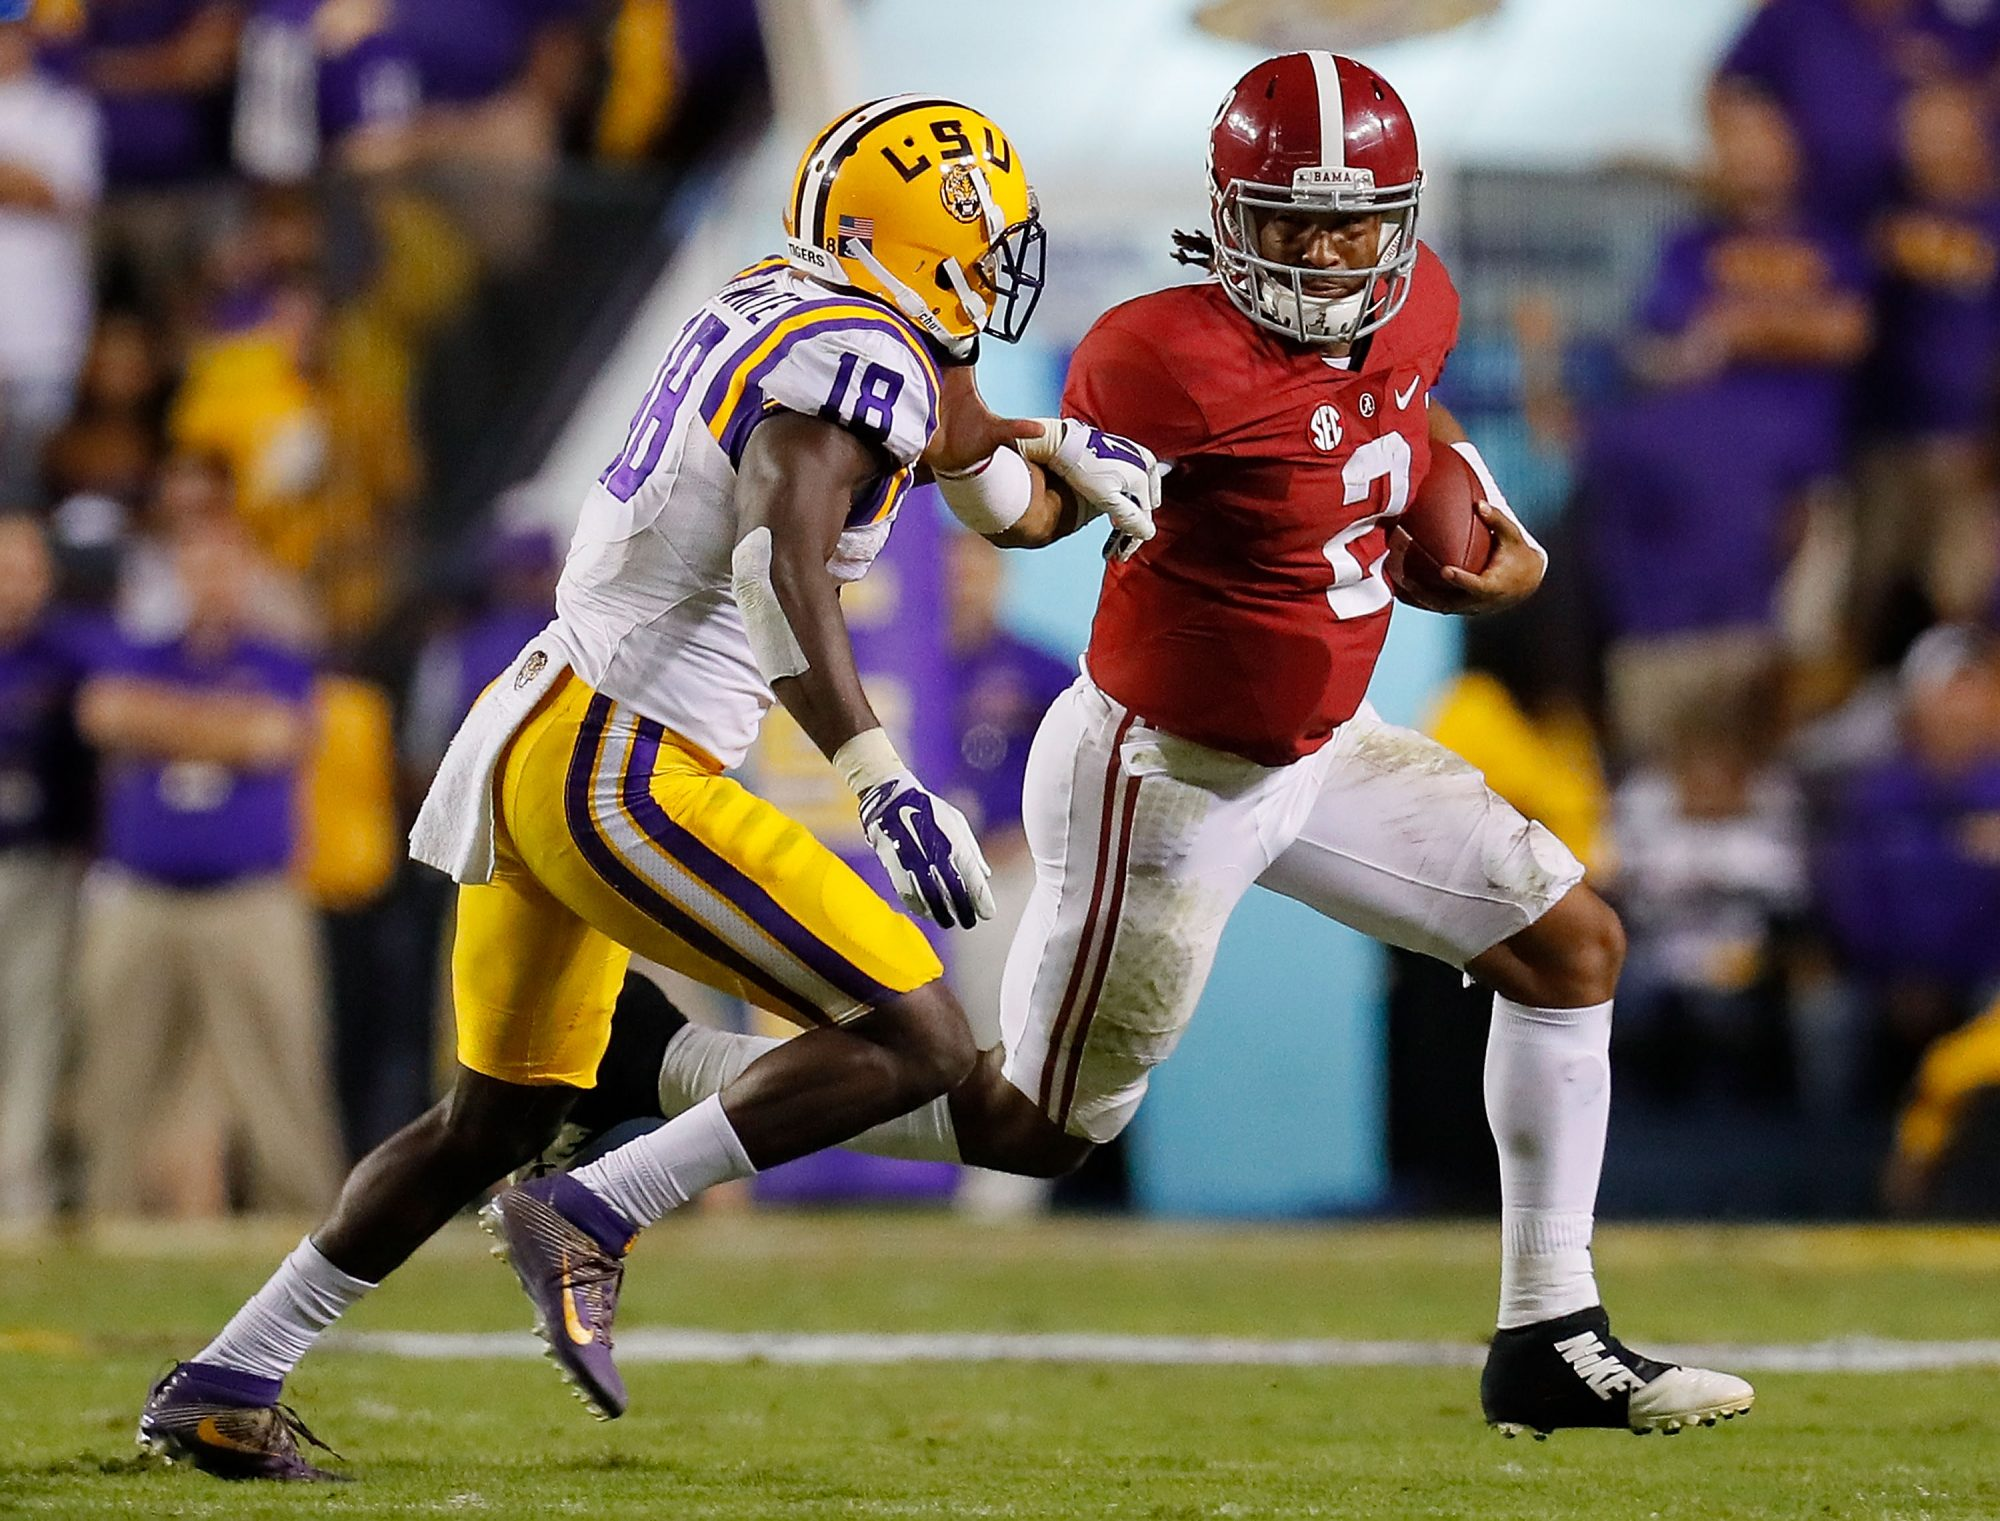 LSU vs. Alabama